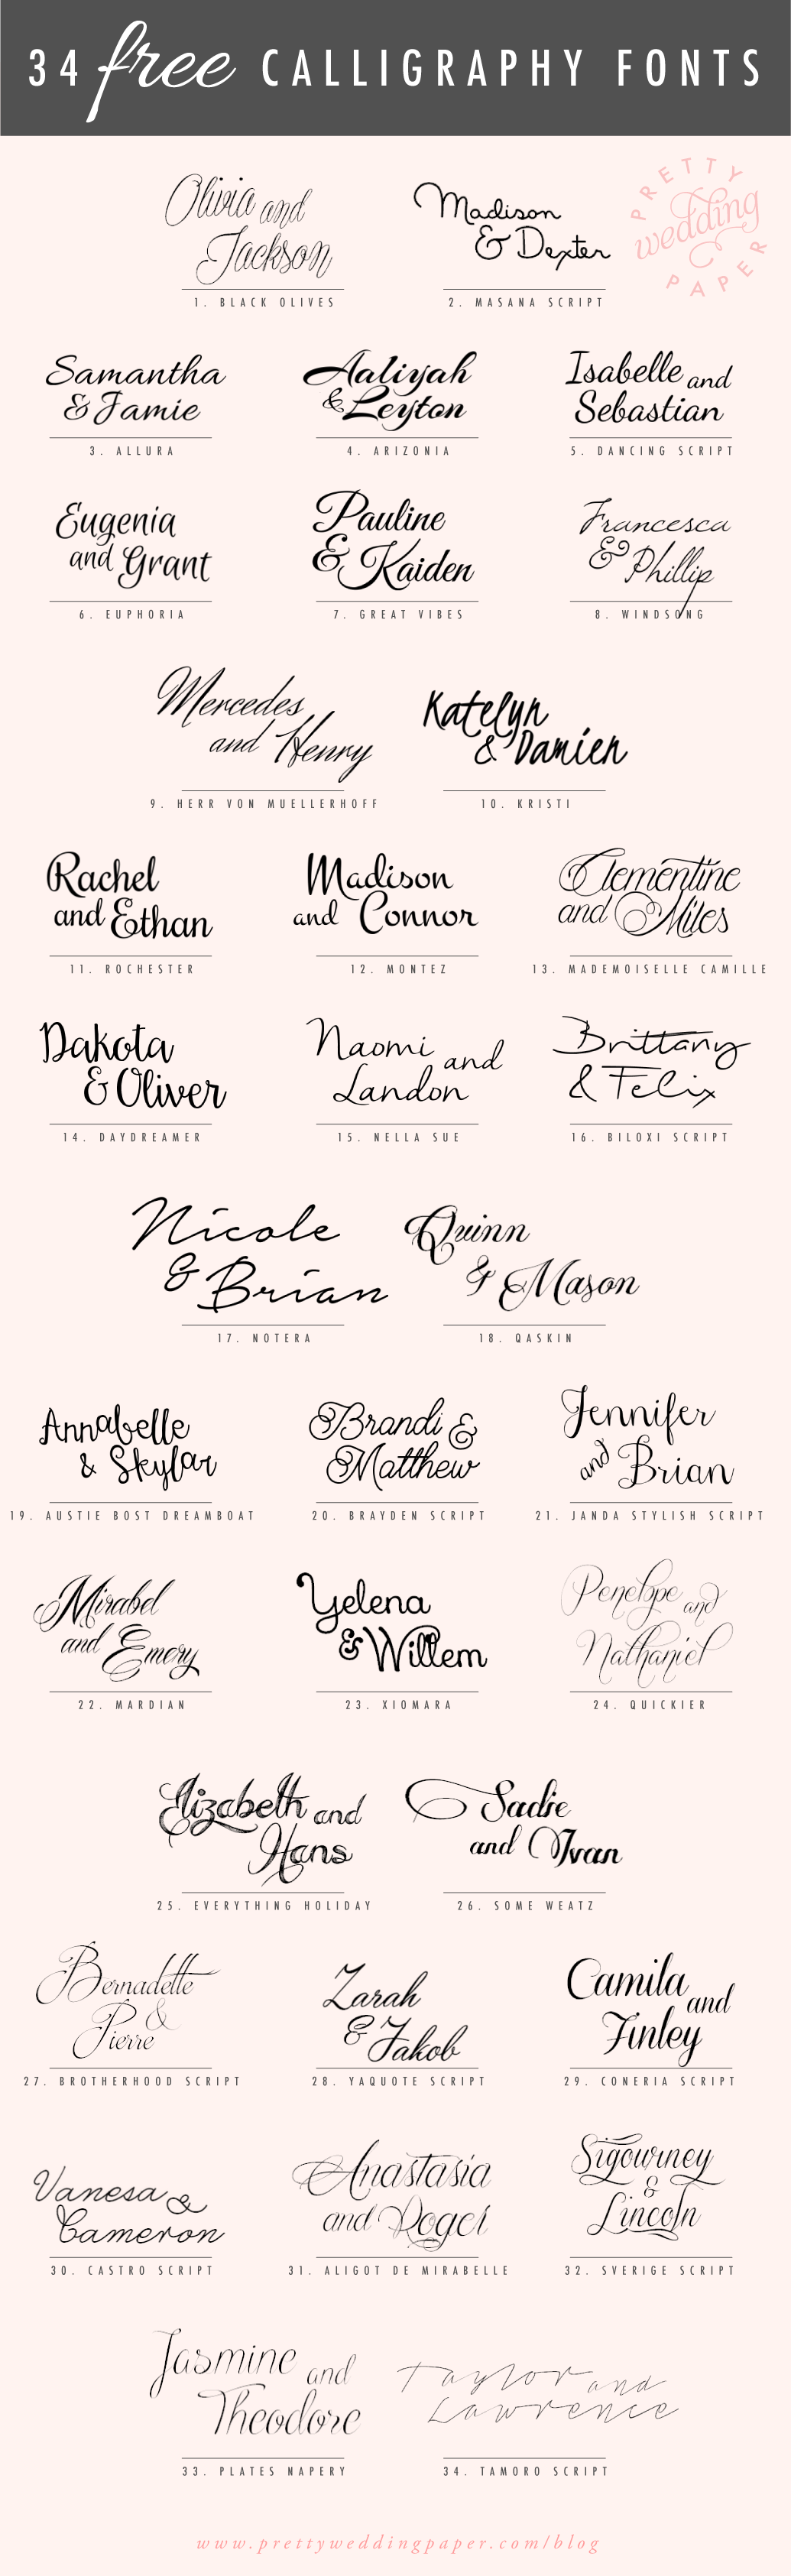 Calligraphy Font Modern Free 34 Free Calligraphy Script Fonts For Wedding Invitations